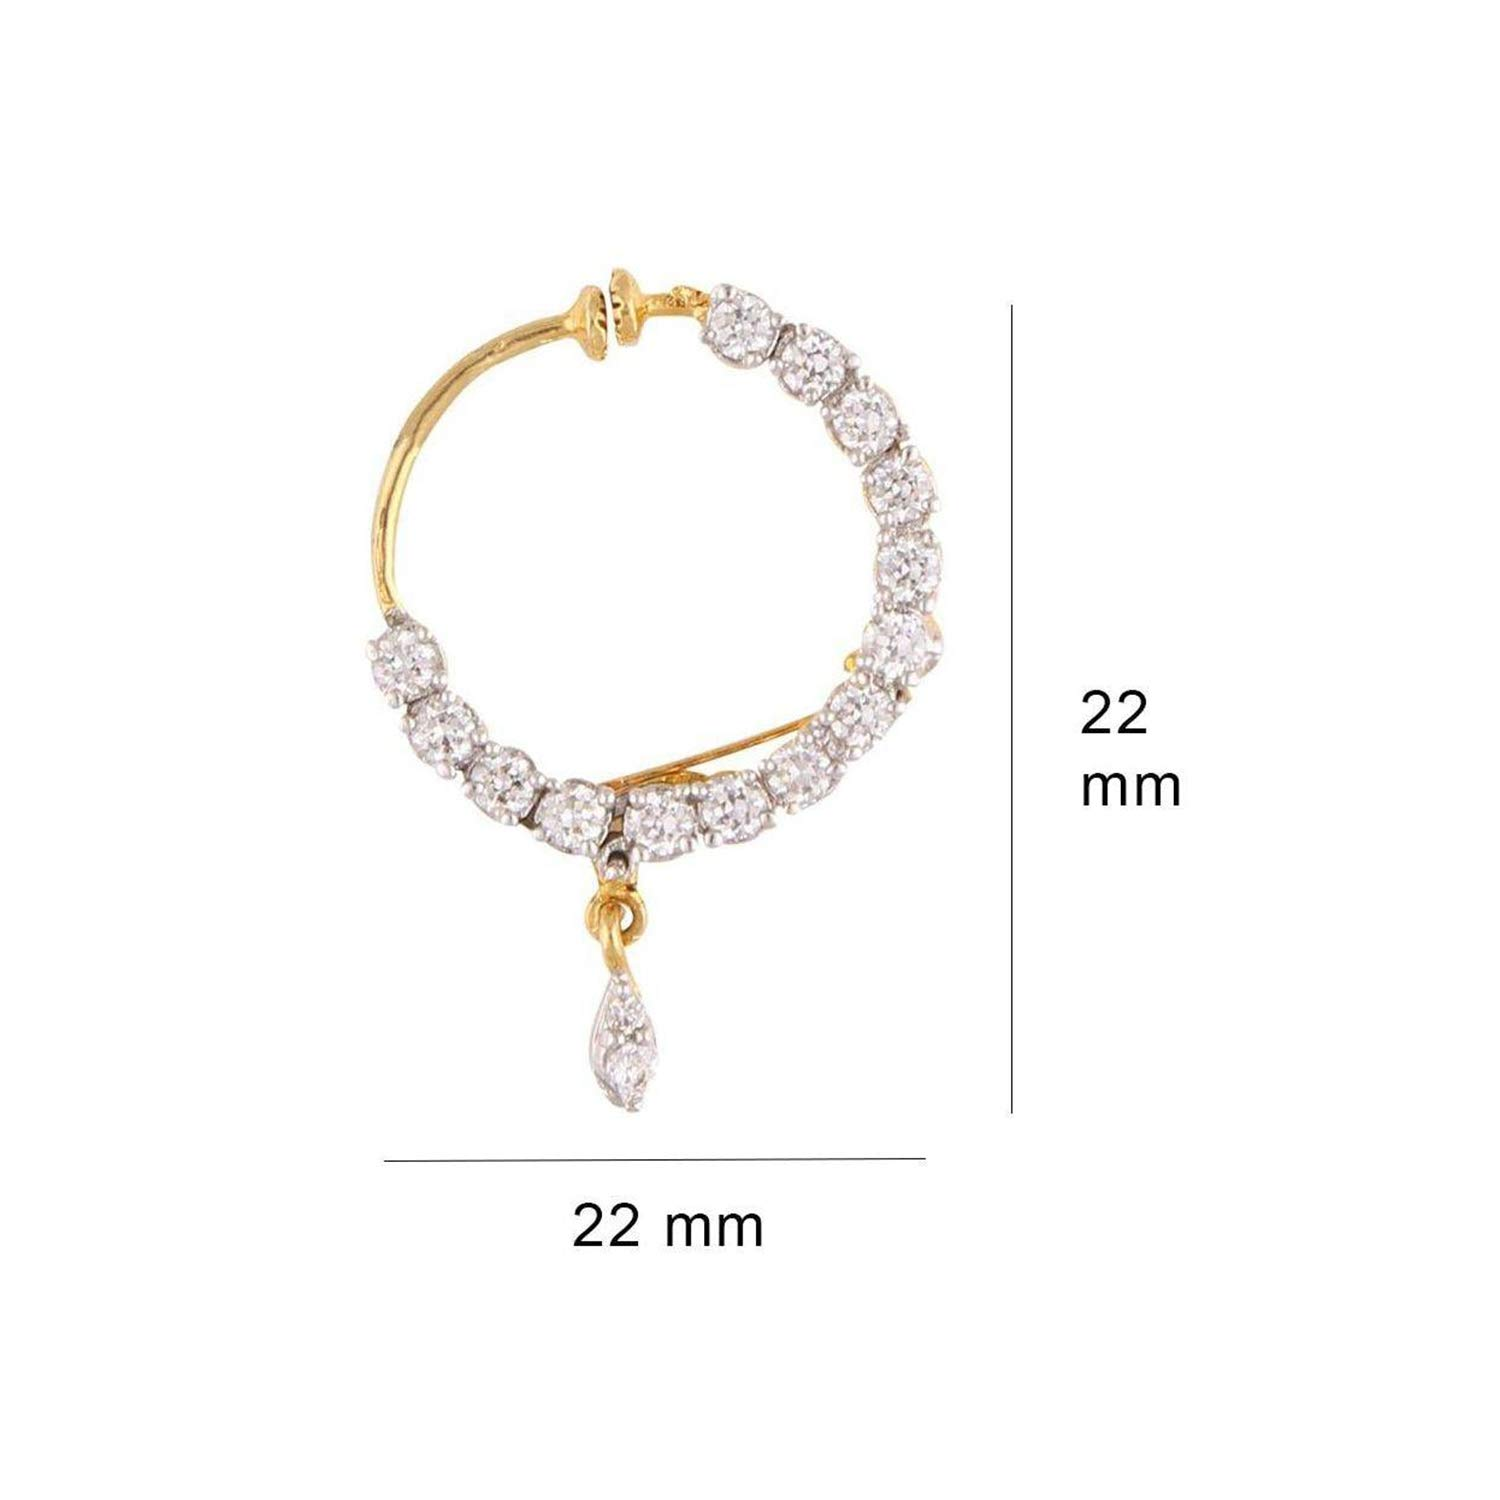 c7254d406758 Buy Geode Delight Gold Plated American Diamond Non Piercing Nose Pin for  Women   Girls Online at Low Prices in India